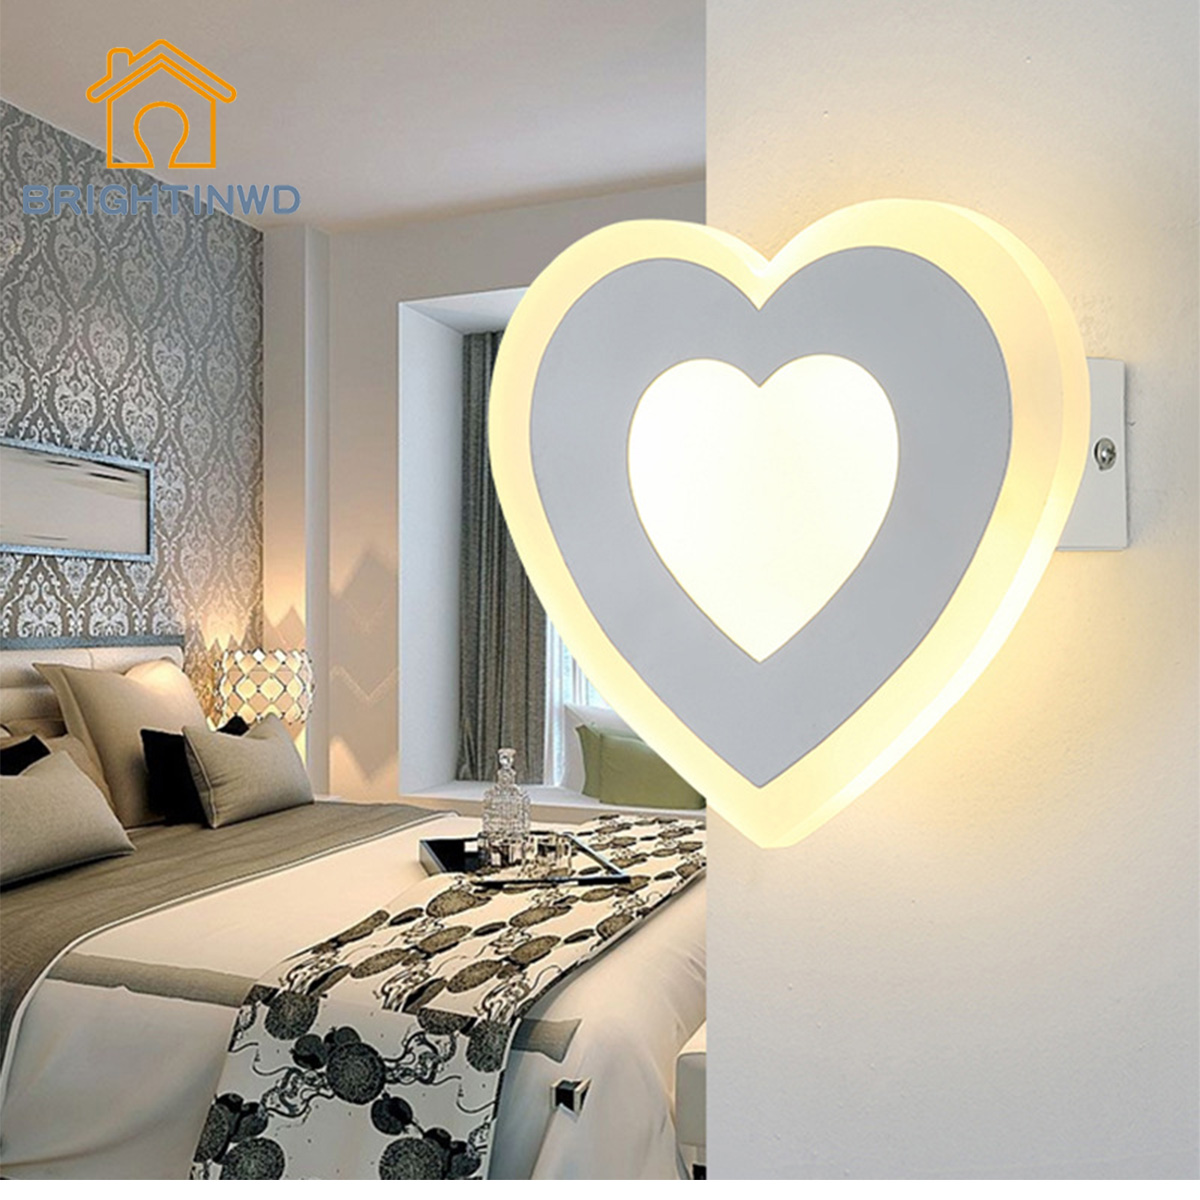 BRIGHTINWD LED Modern Minimalist Wall Lamp Corridor Bedroom Aisle Acrylic Energy-Saving Wall Lamp m 2016 newest led acrylic wall lamp real energy saving and environmental protection l26 w13 exquisite and delicate for bedroom